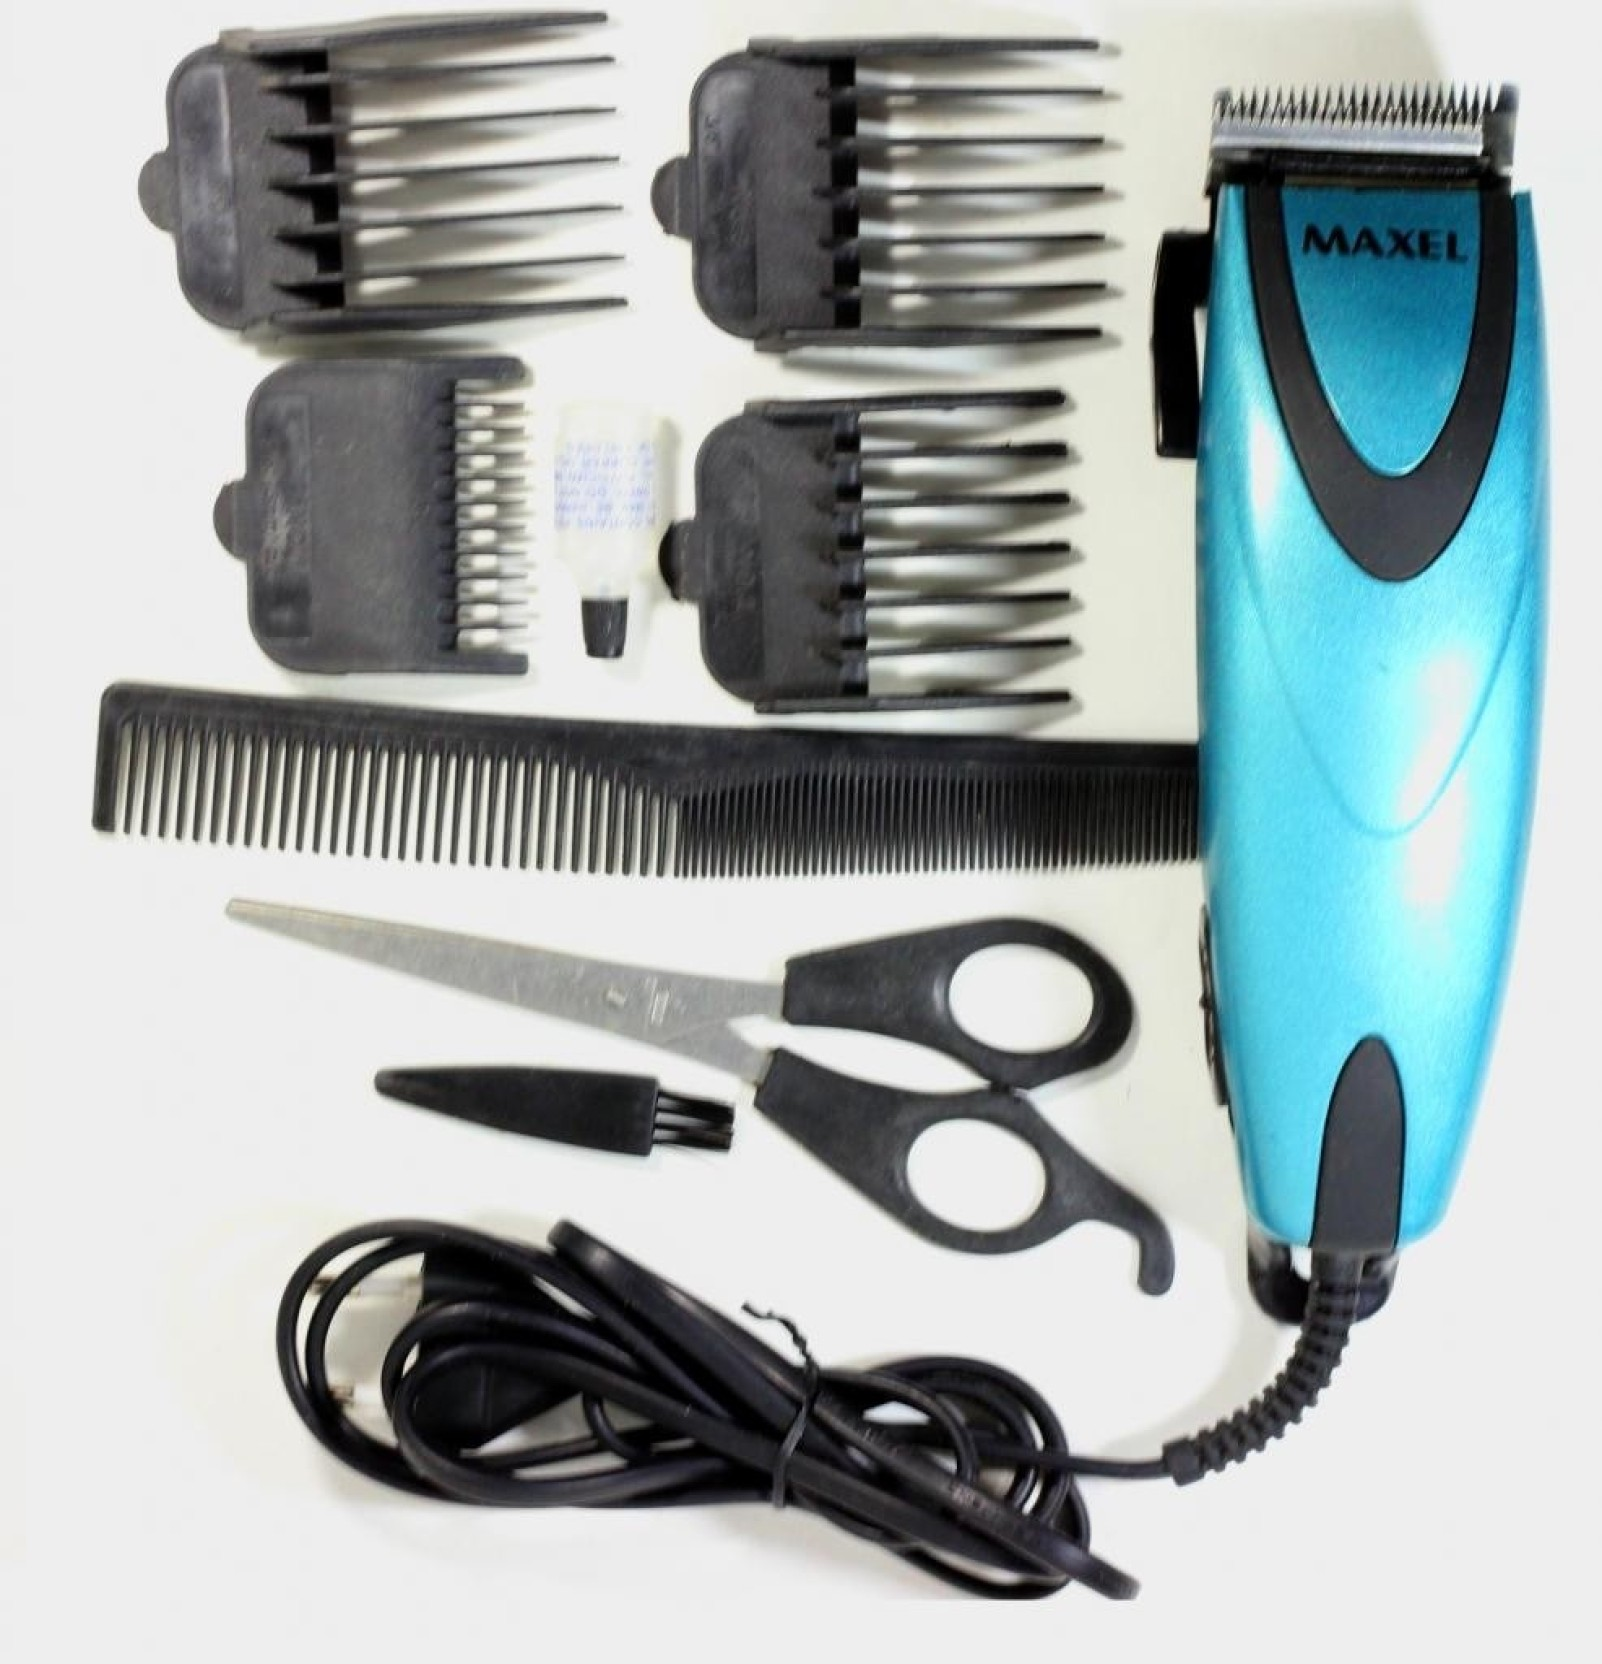 maxel electric professional hair clipper maxel. Black Bedroom Furniture Sets. Home Design Ideas